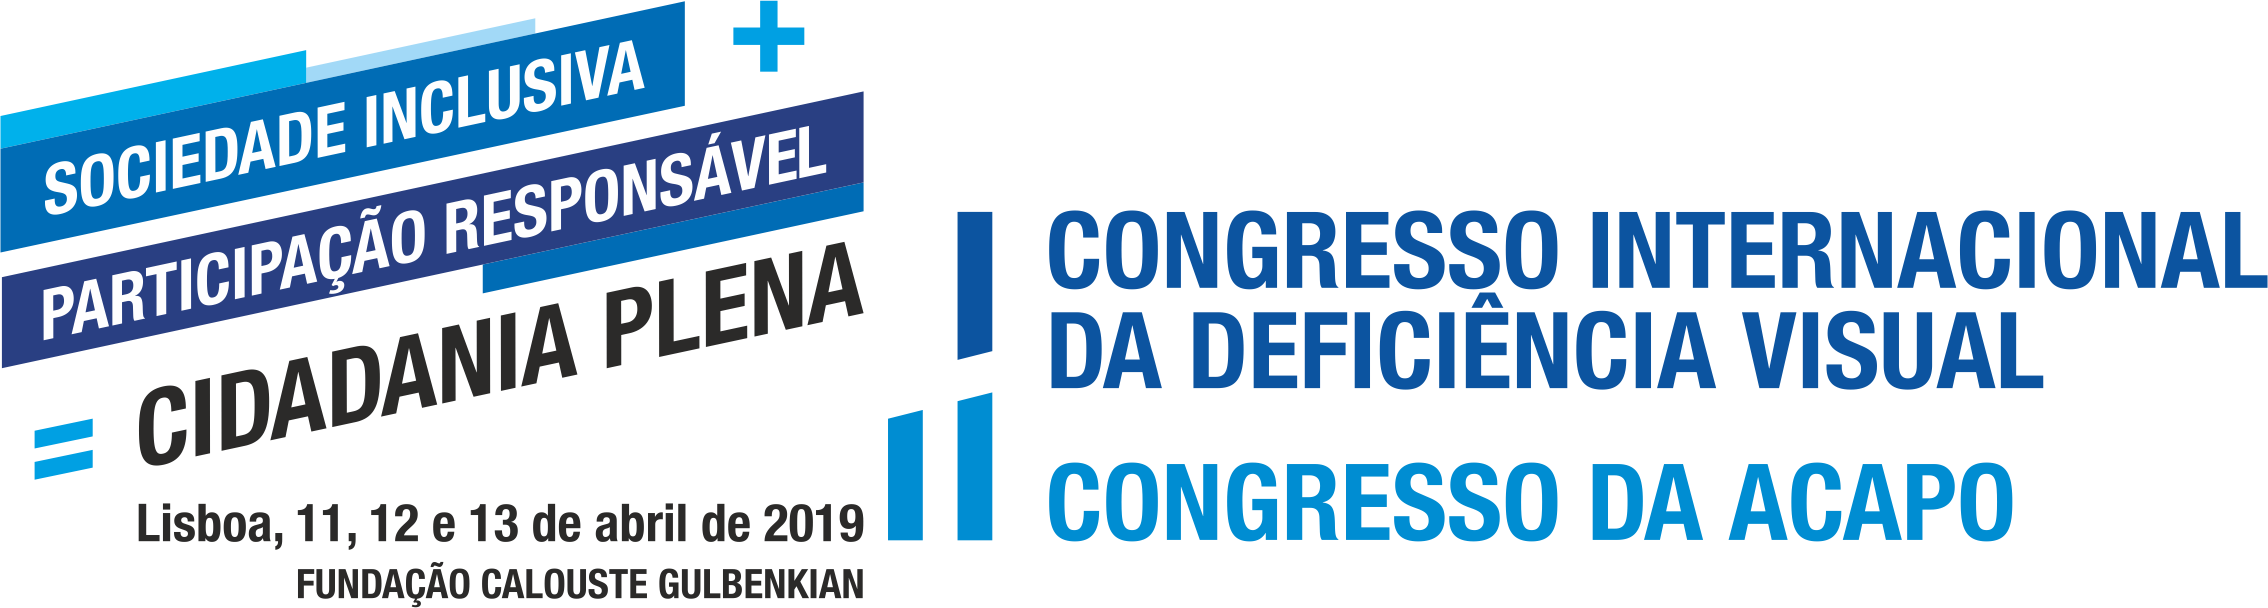 Cover photo of the event de II Congresso da ACAPO e I Congresso Internacional da Deficiência Visual